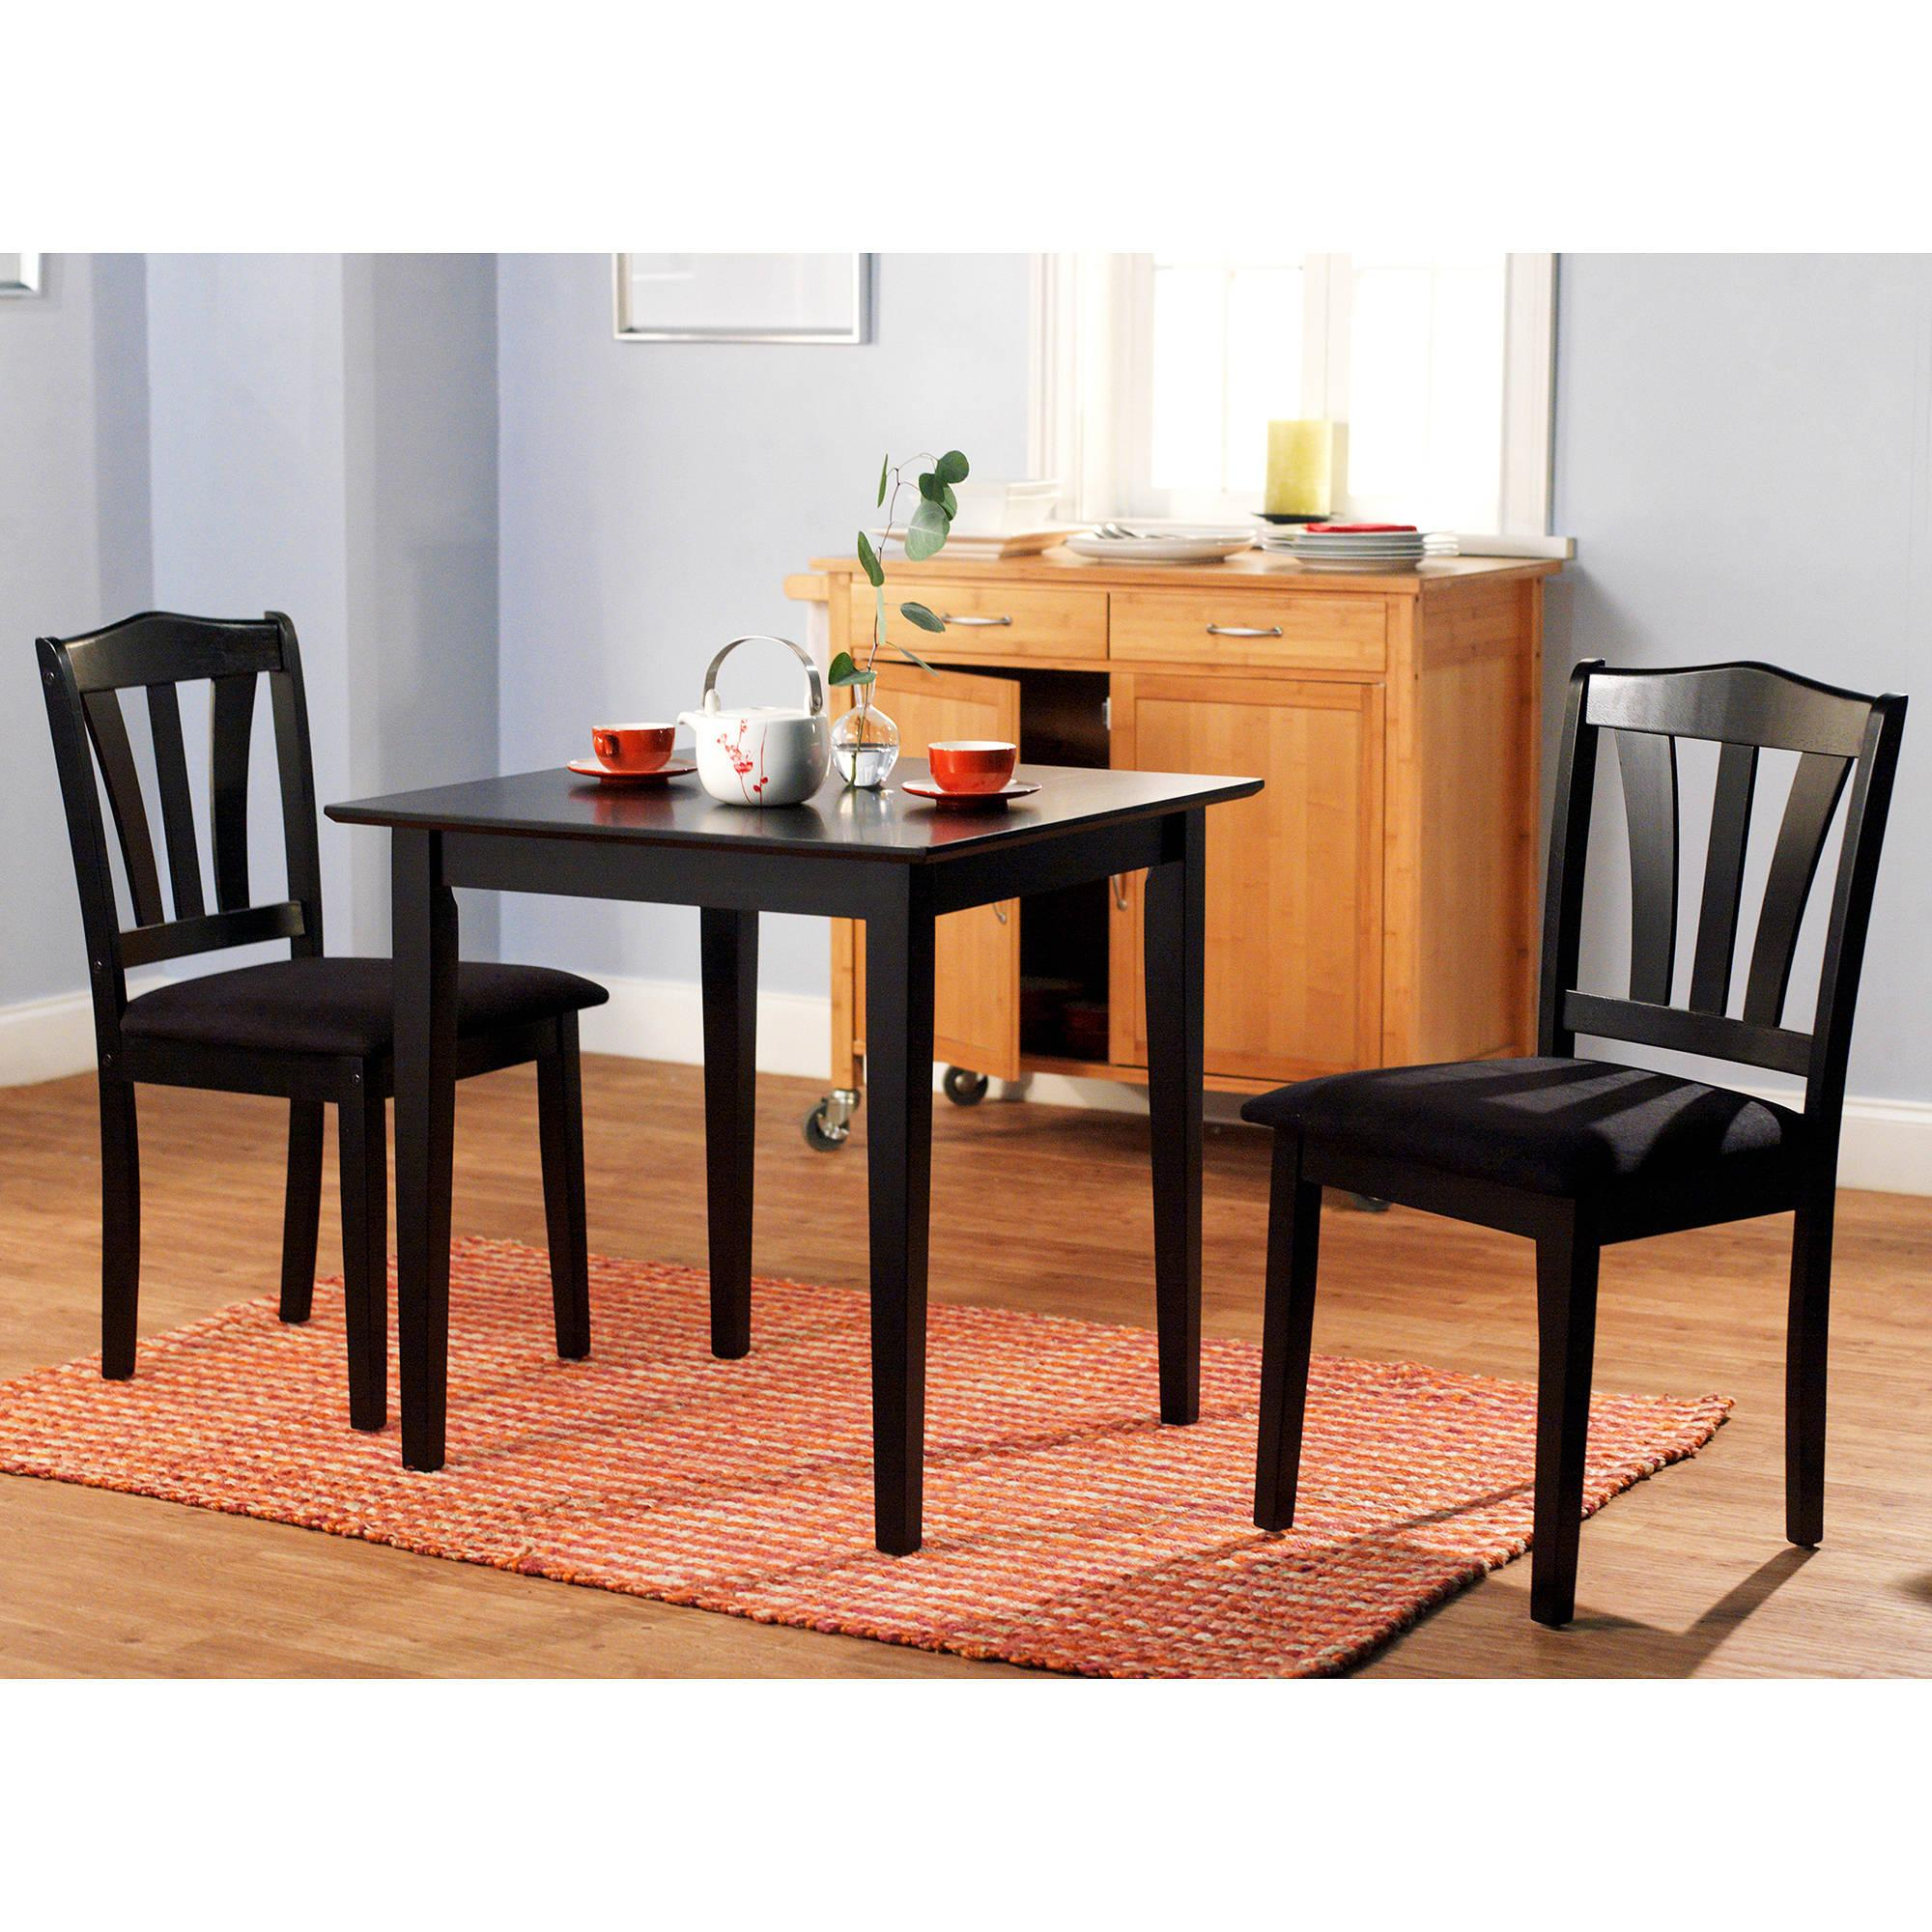 Kitchen Furniture: 3 Piece Dining Set Table 2 Chairs Kitchen Room Wood